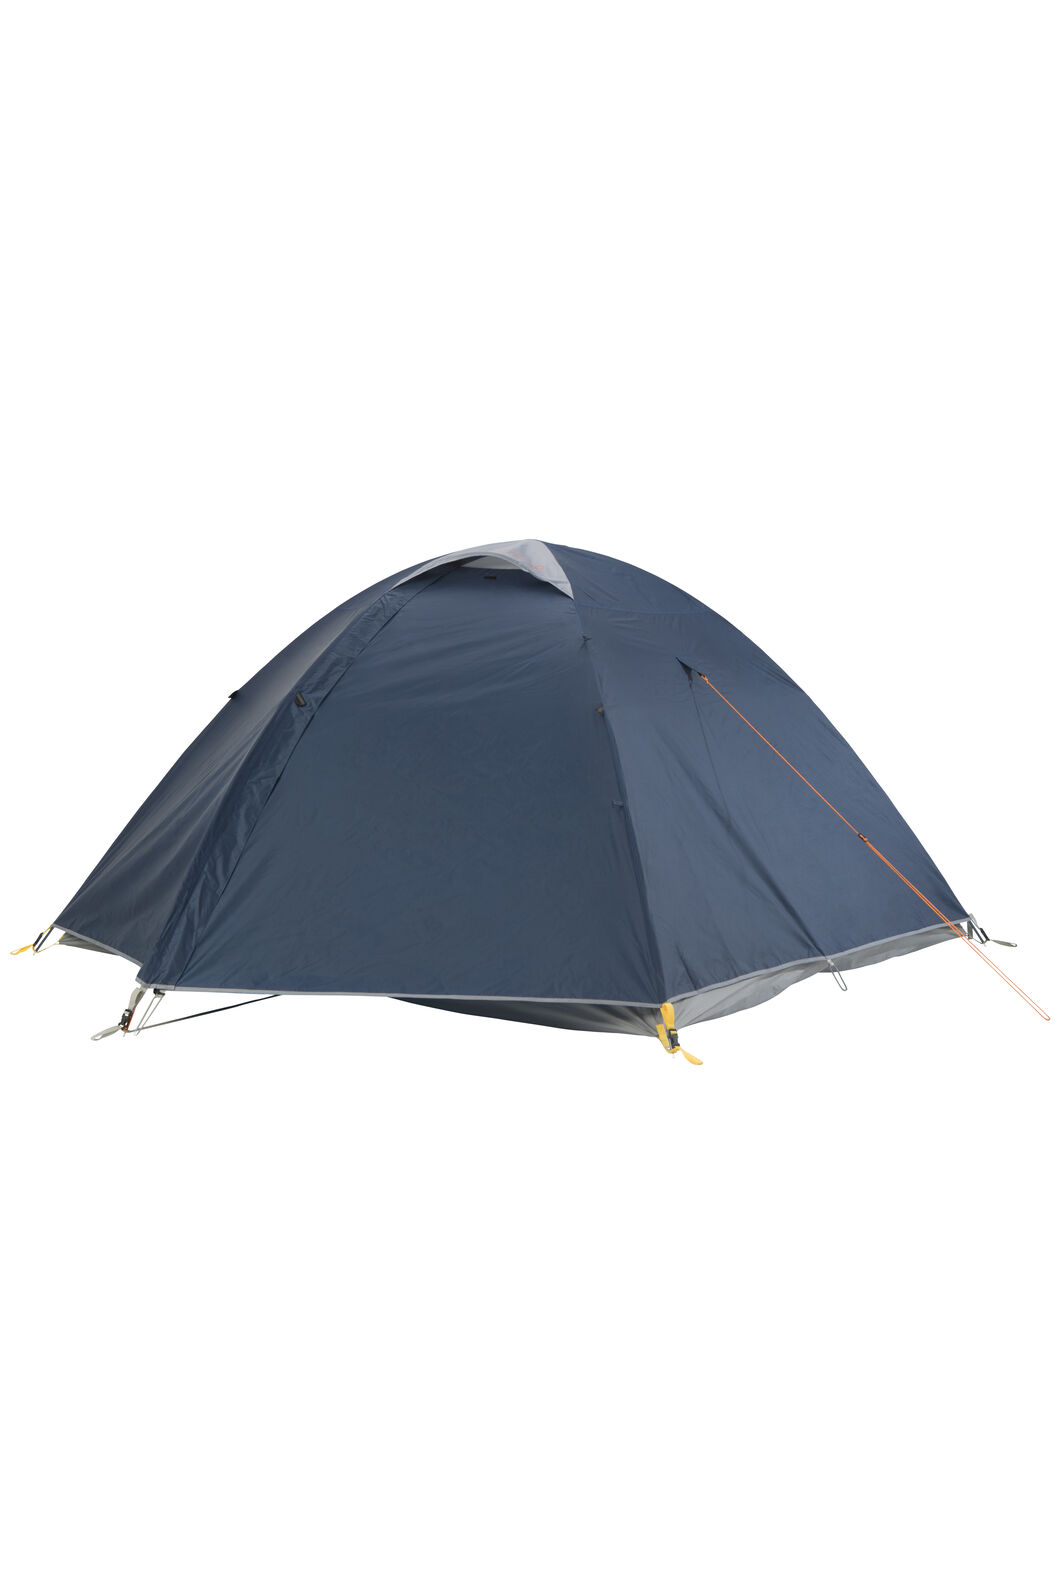 Macpac Orion Camping Tent, Navy, hi-res